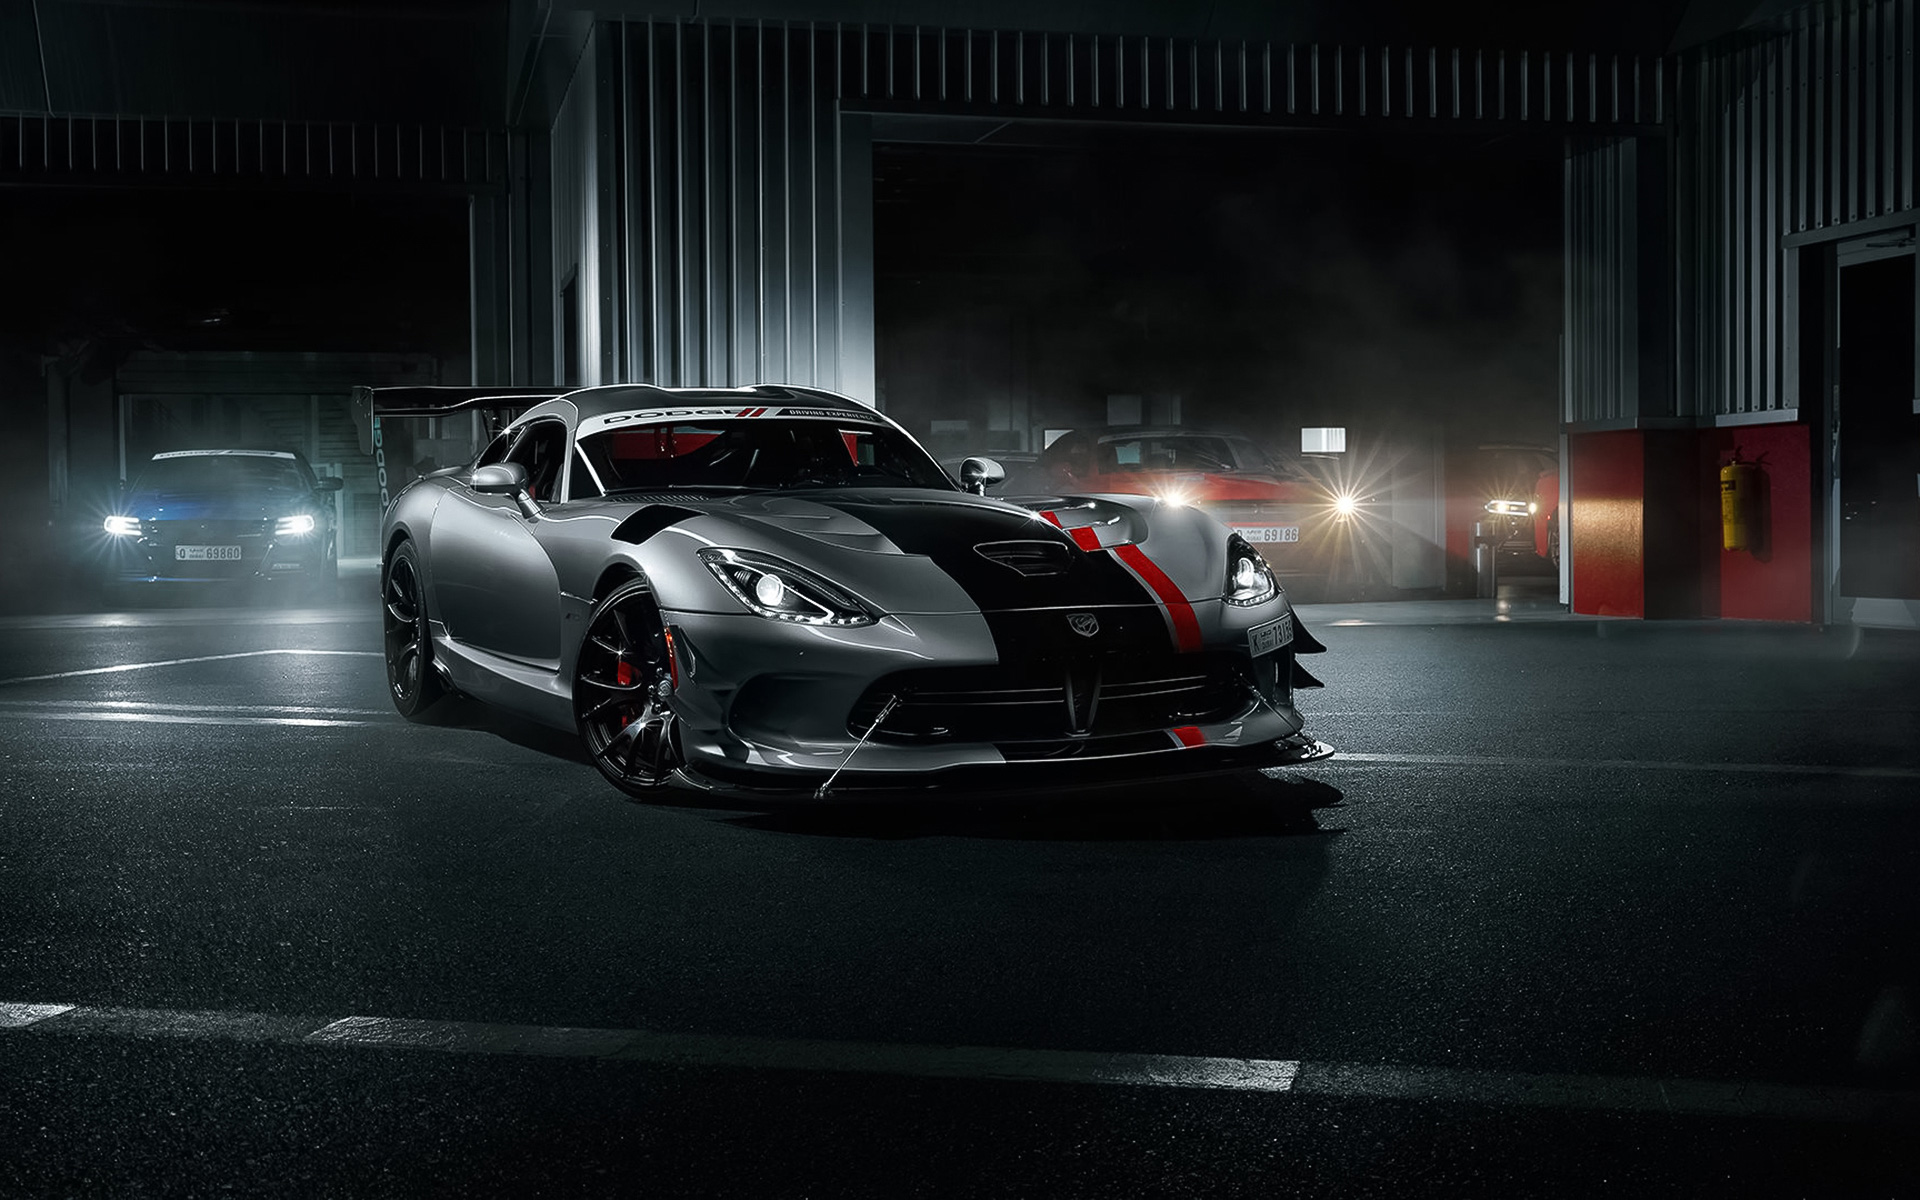 2016 Jeep Truck >> Dodge Viper ACR 2016 Wallpaper | HD Car Wallpapers | ID #6536